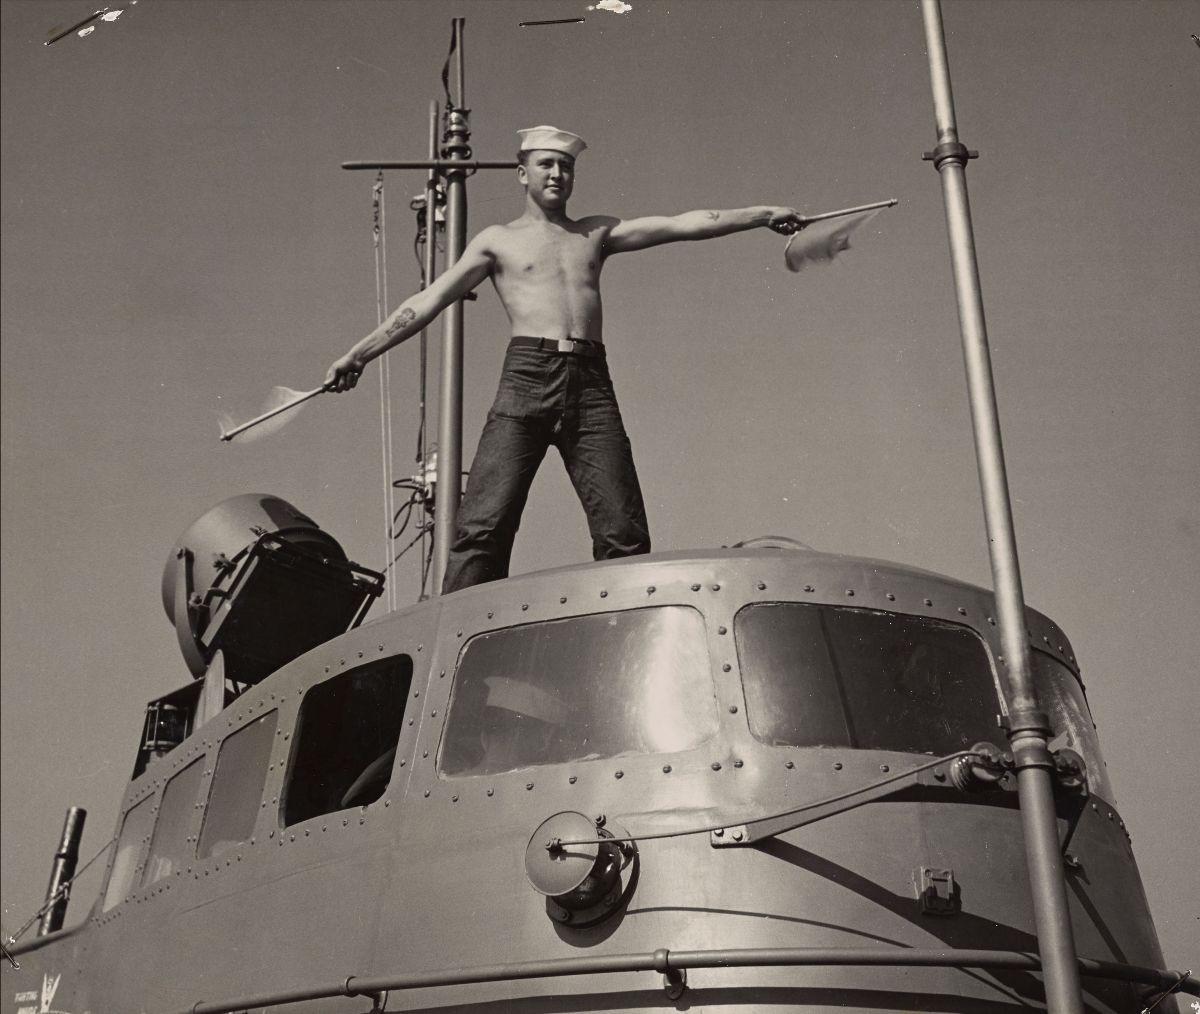 Black and white photograph of a coast guard signalman sending a message with flags while standing on top of a submarine